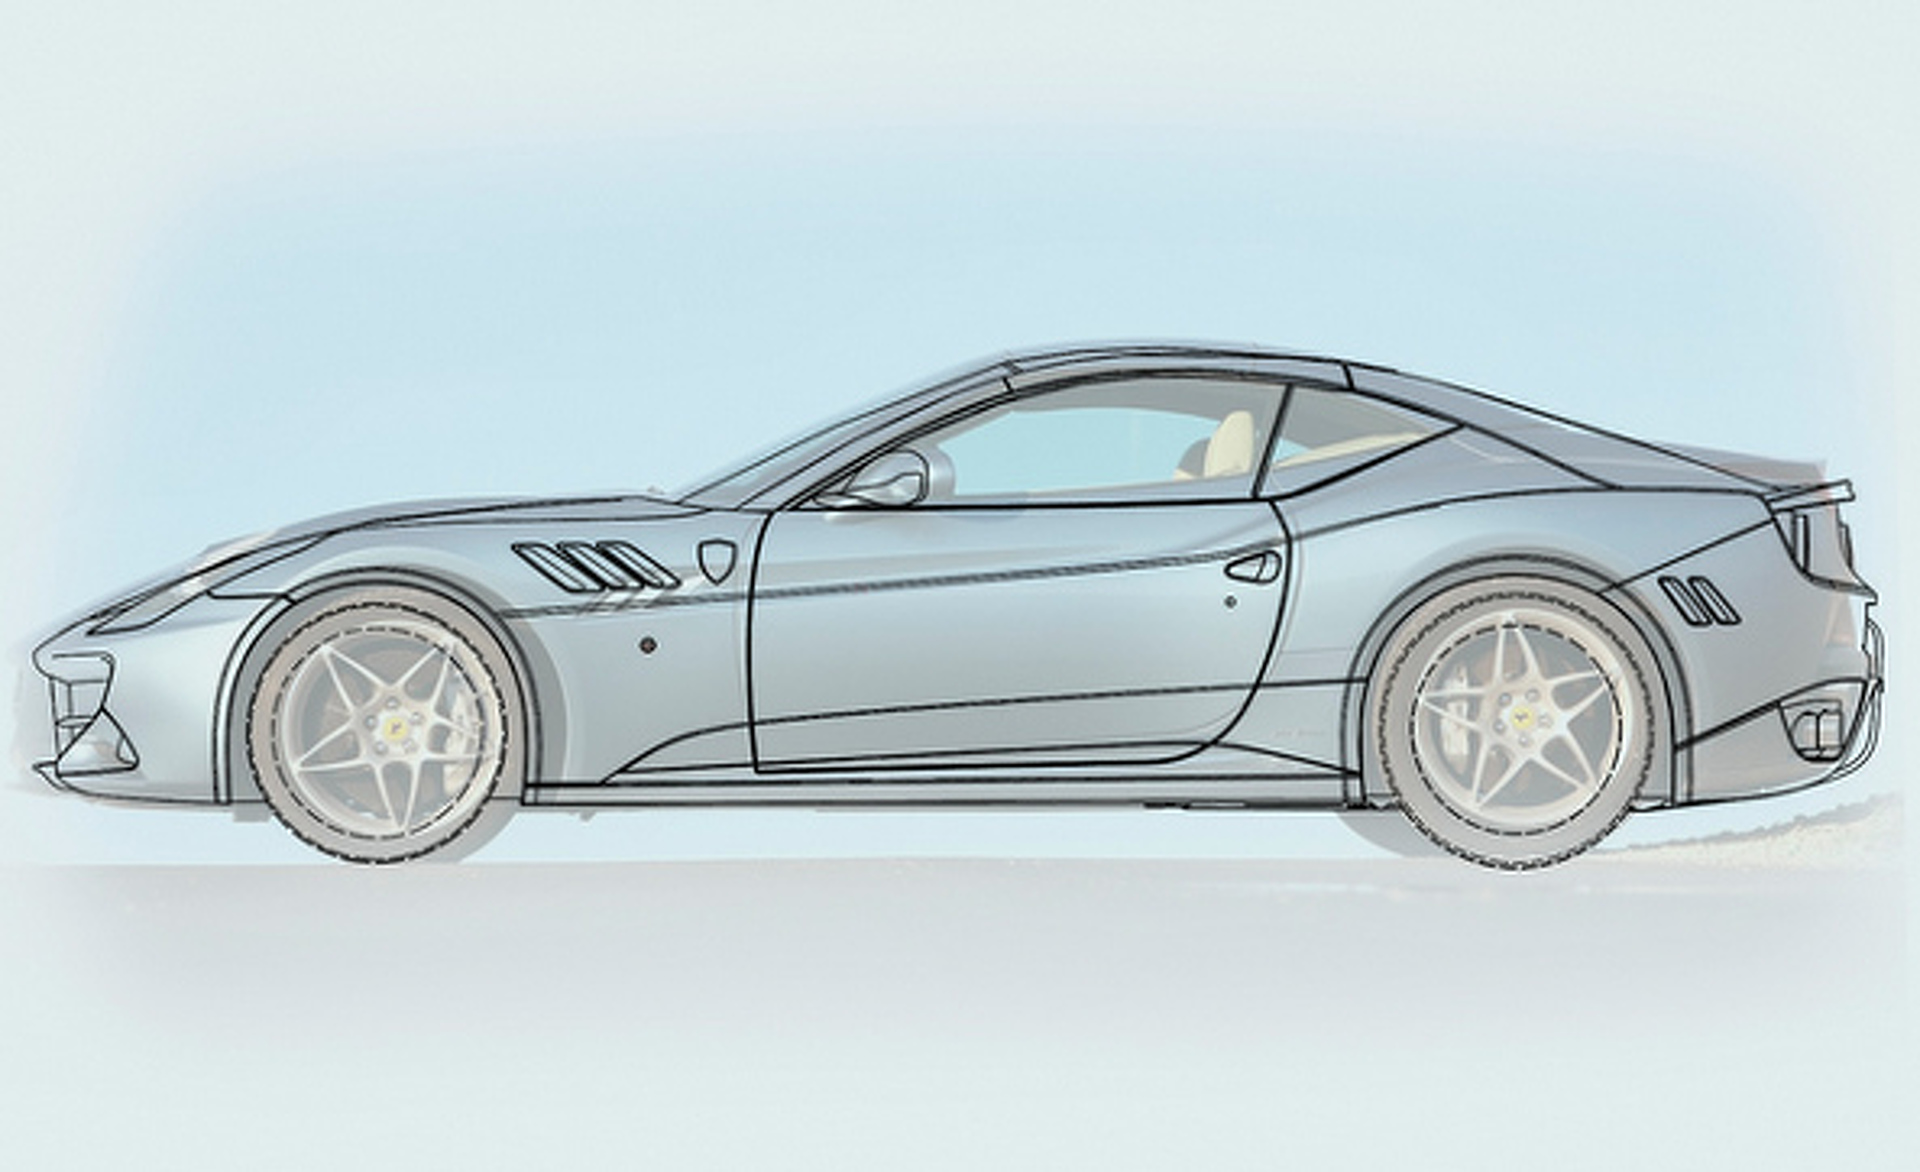 Ferrari Patents Reveal California Replacement In the Works?